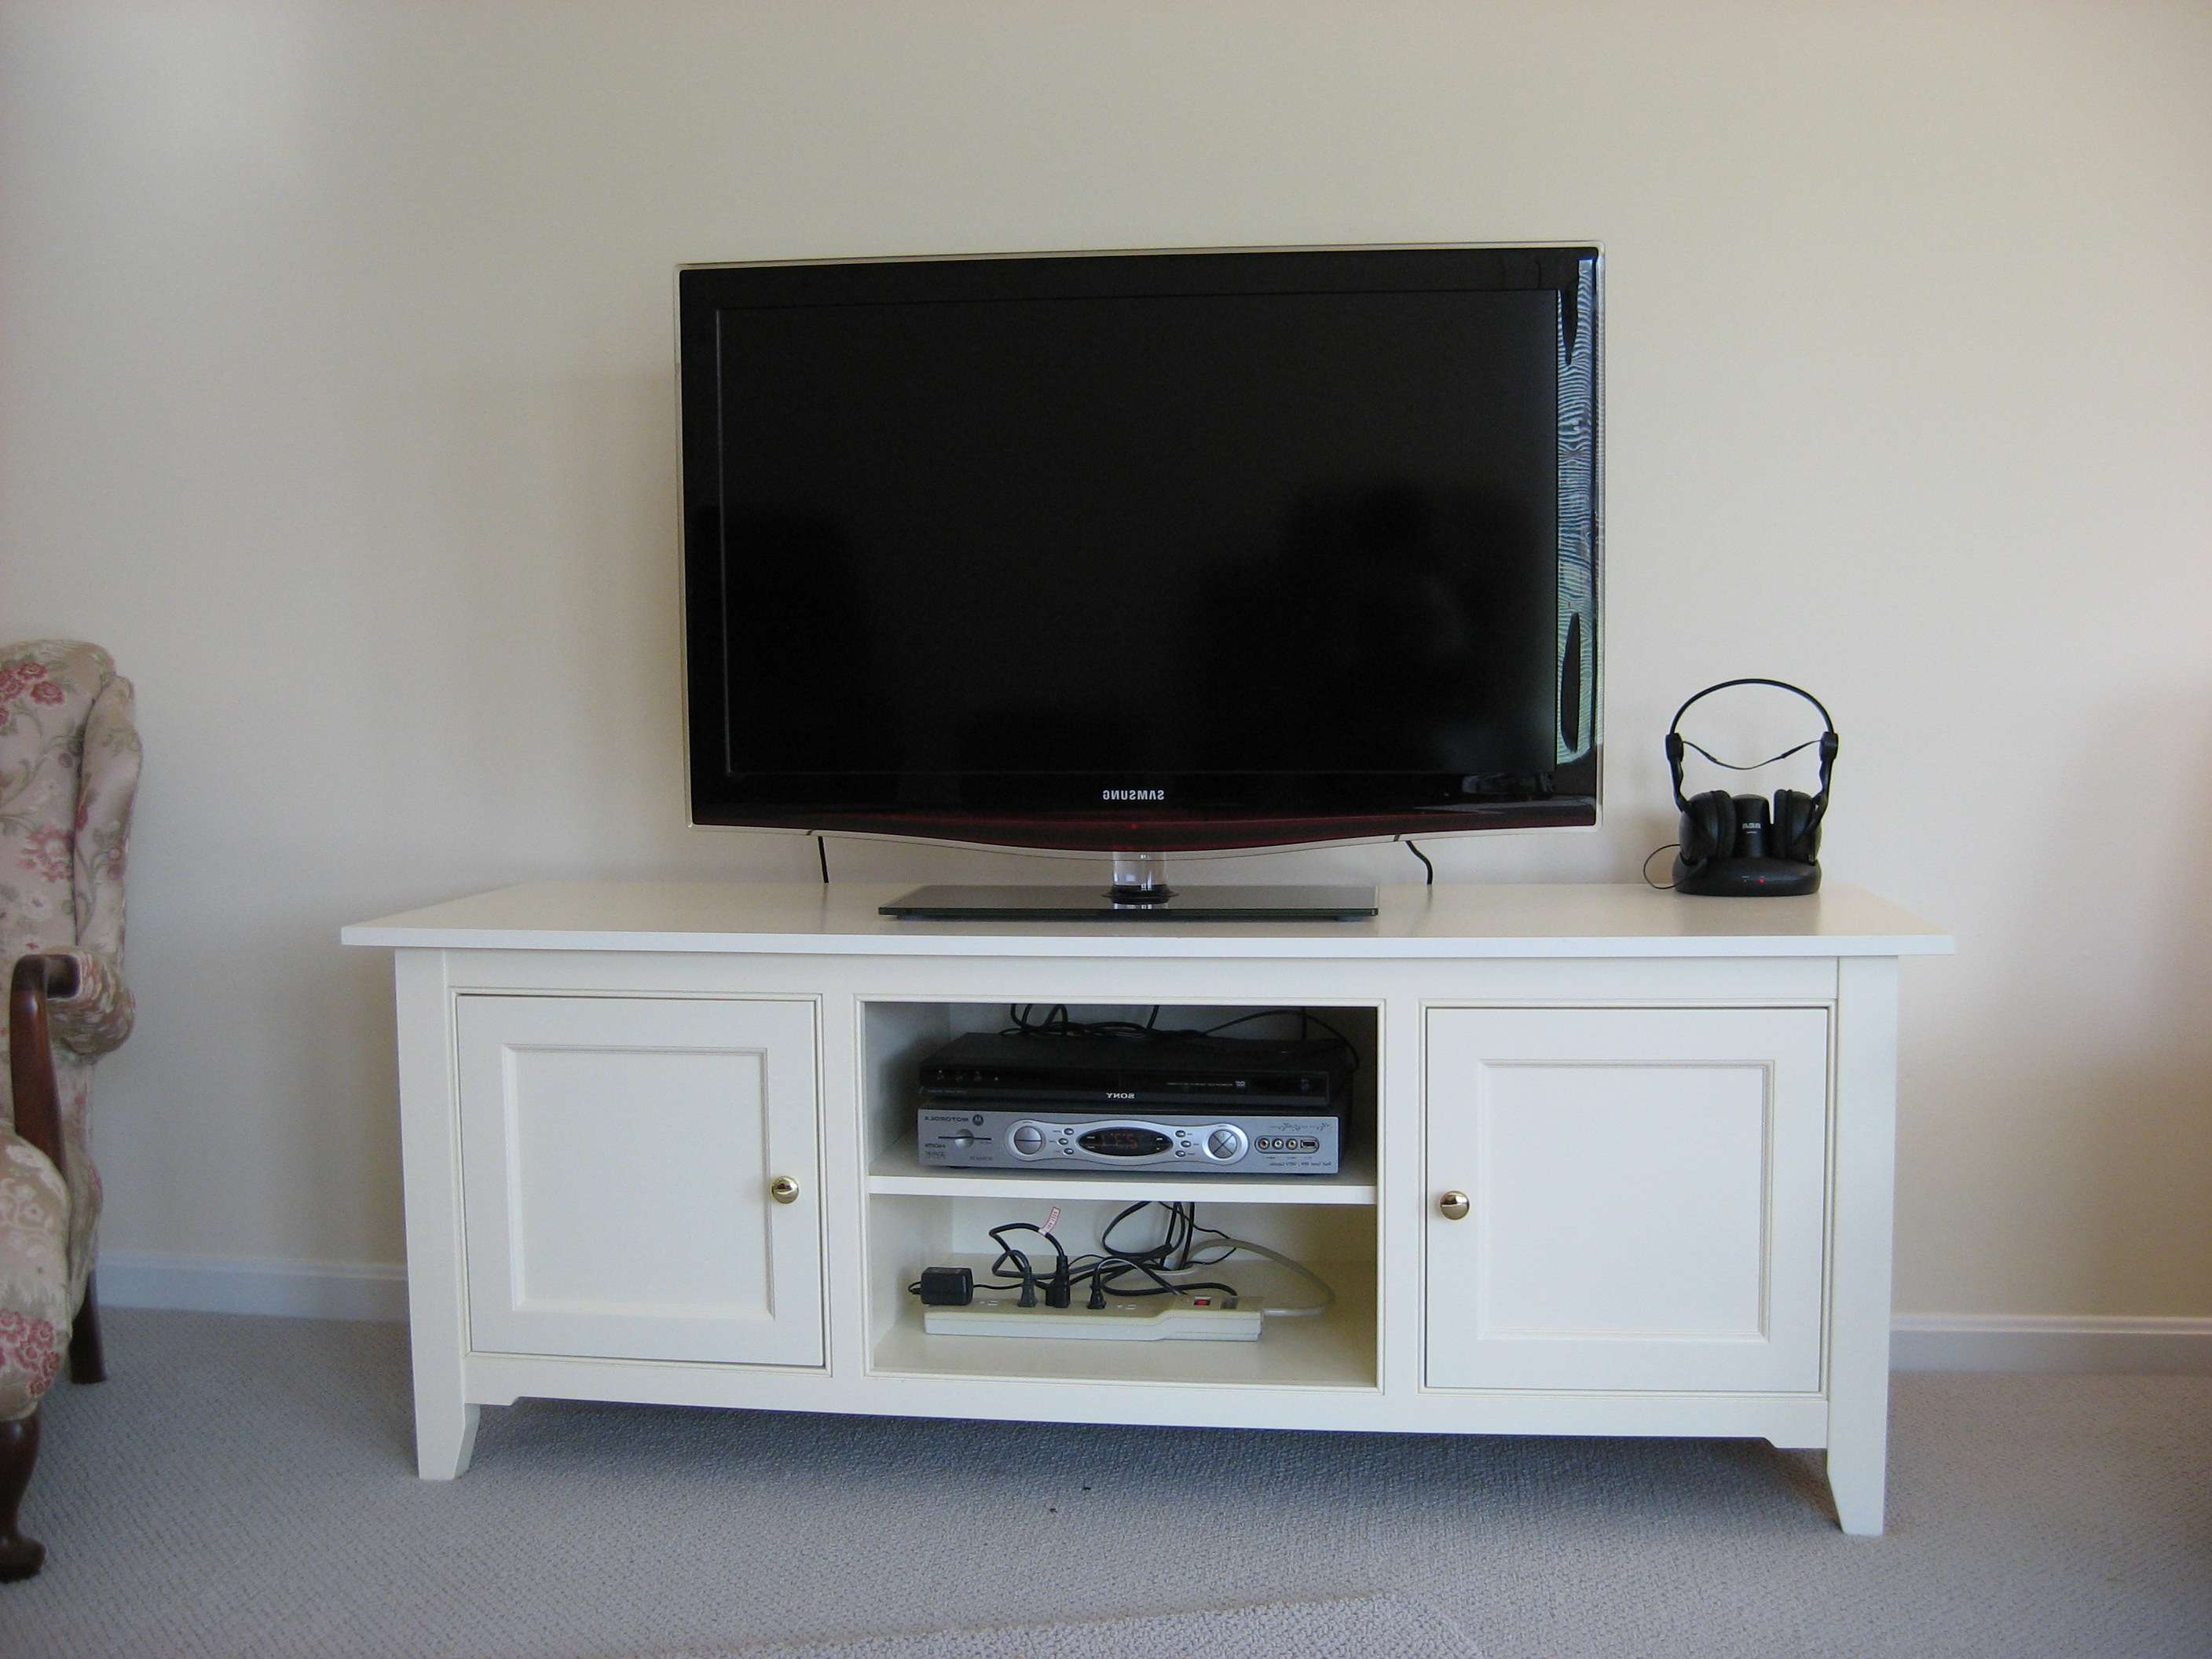 Living Room Furniture Classy White Wooden Vintage Modern Tv Stand With Regard To Vintage Tv Stands For Sale (View 7 of 15)